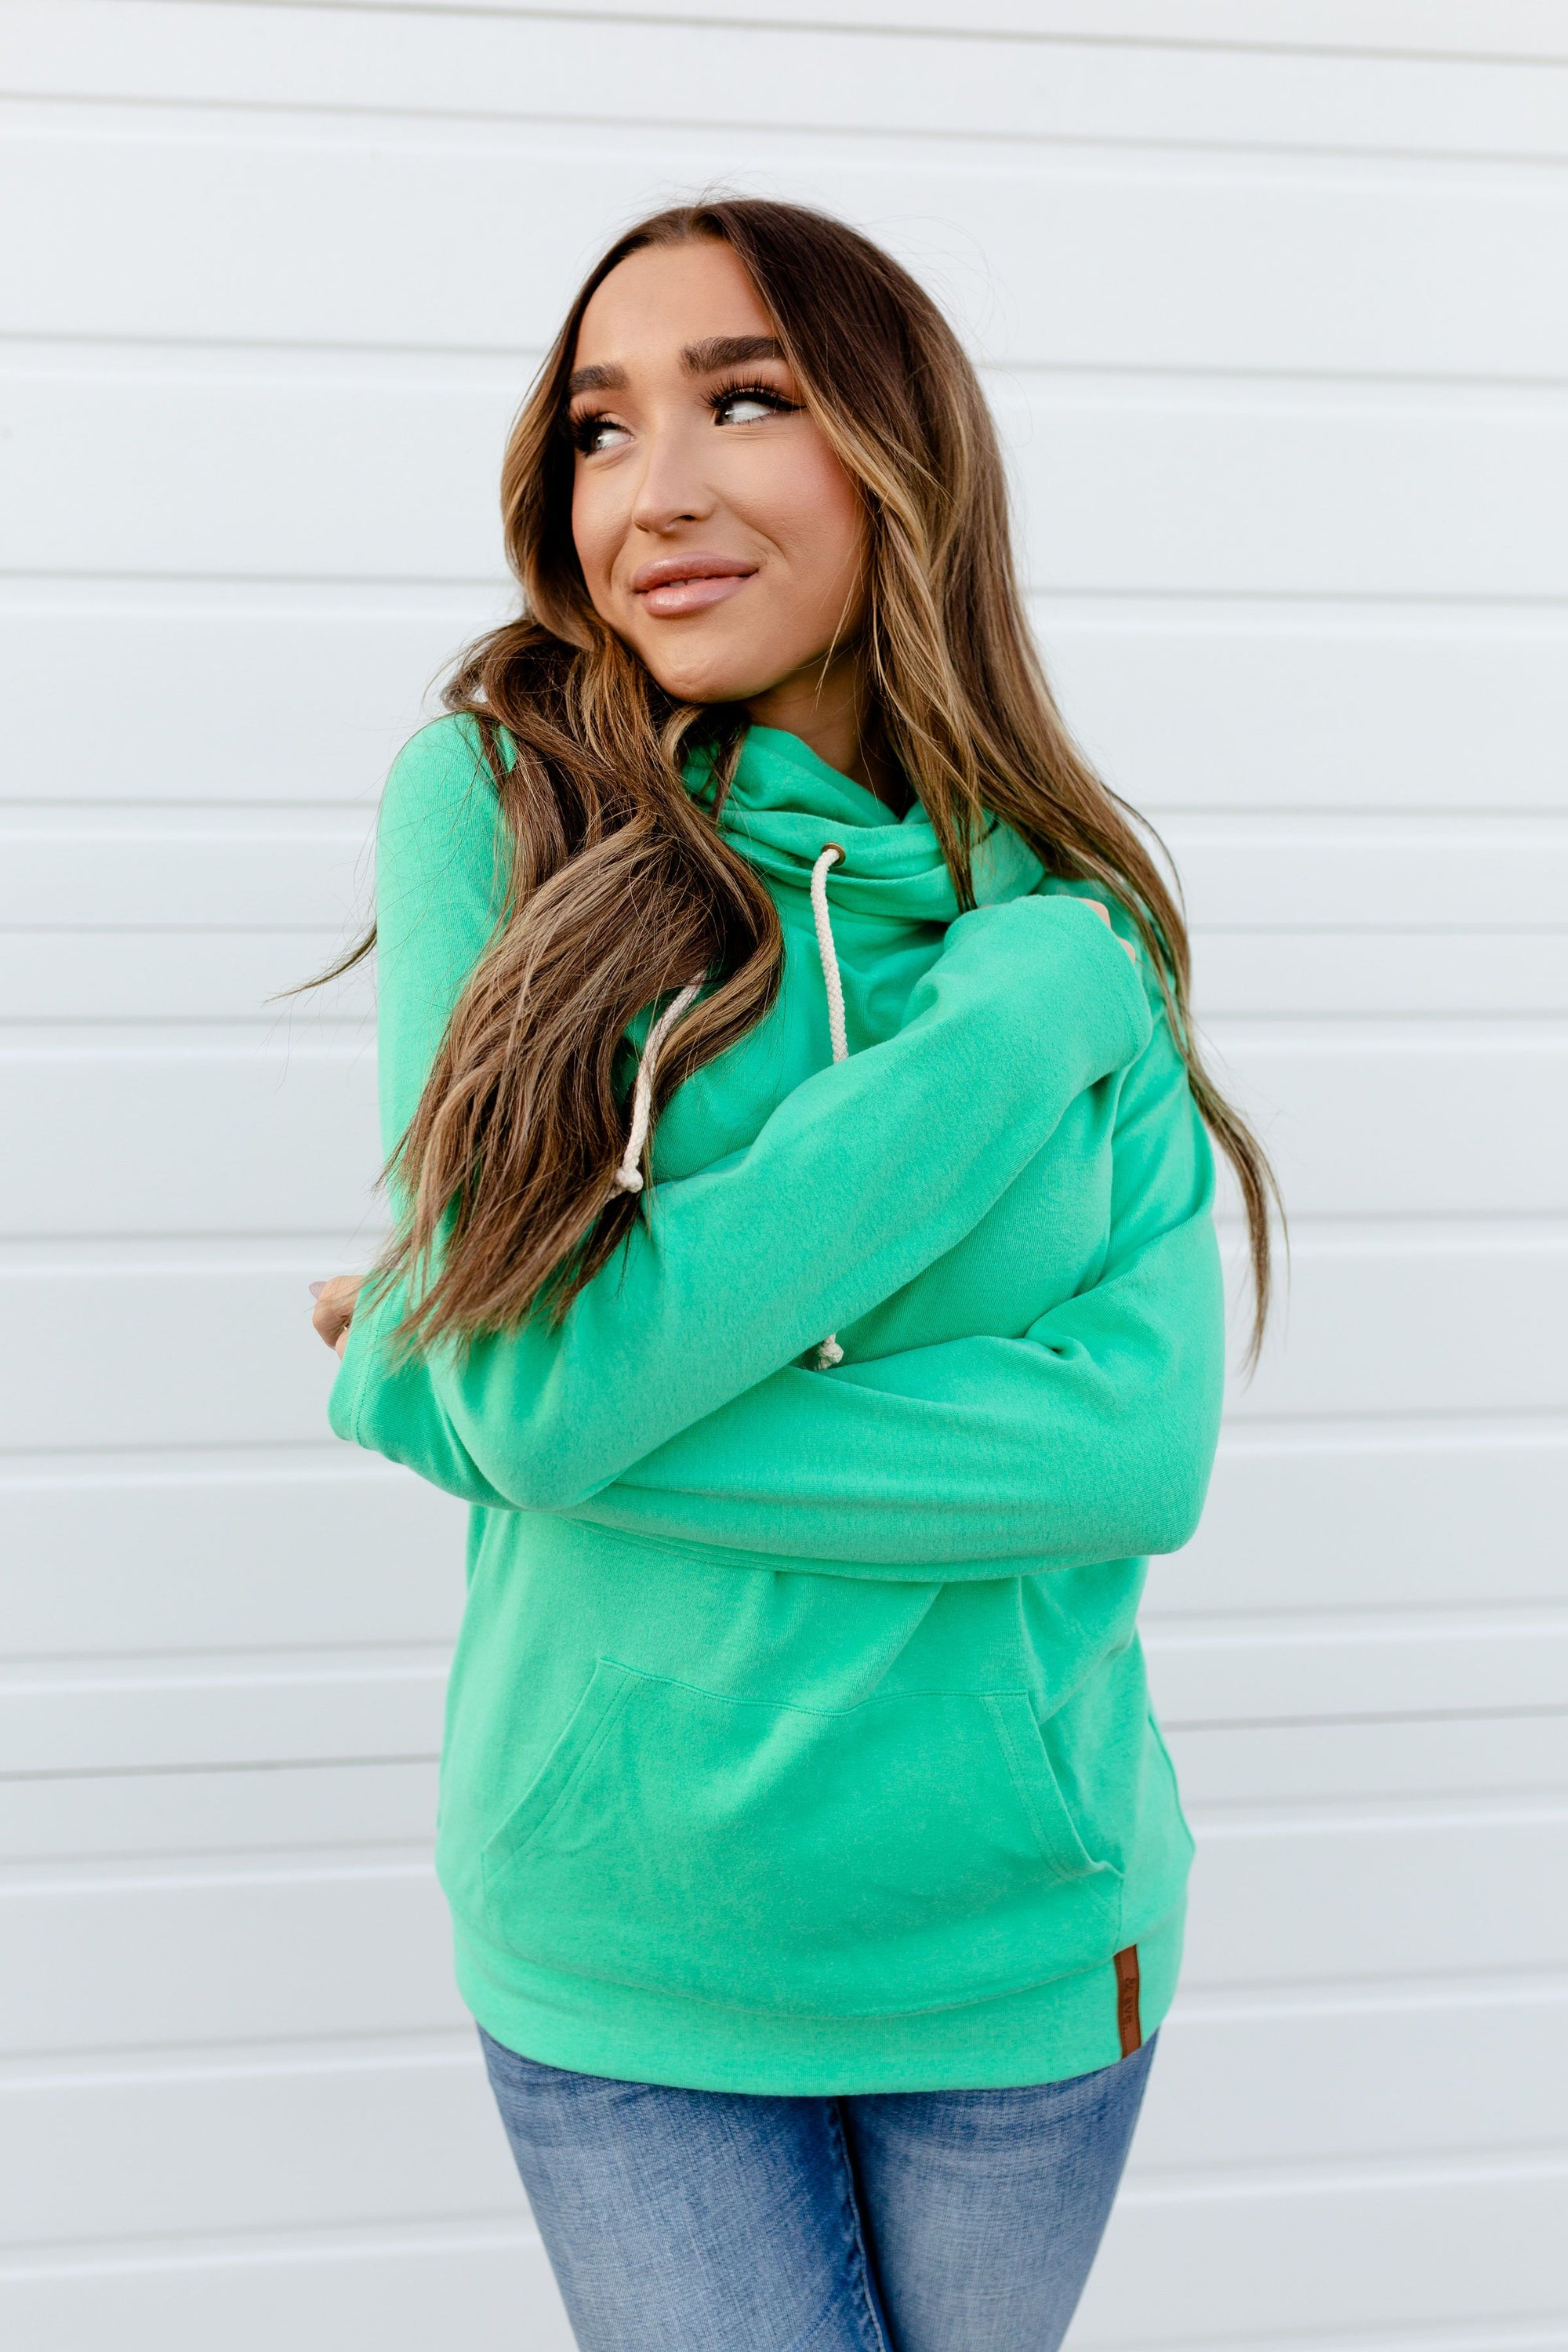 The Basic Doublehood Sweatshirt - Jade-[option4]-[option5]-[option6]-[option7]-[option8]-Womens-Clothing-Shop